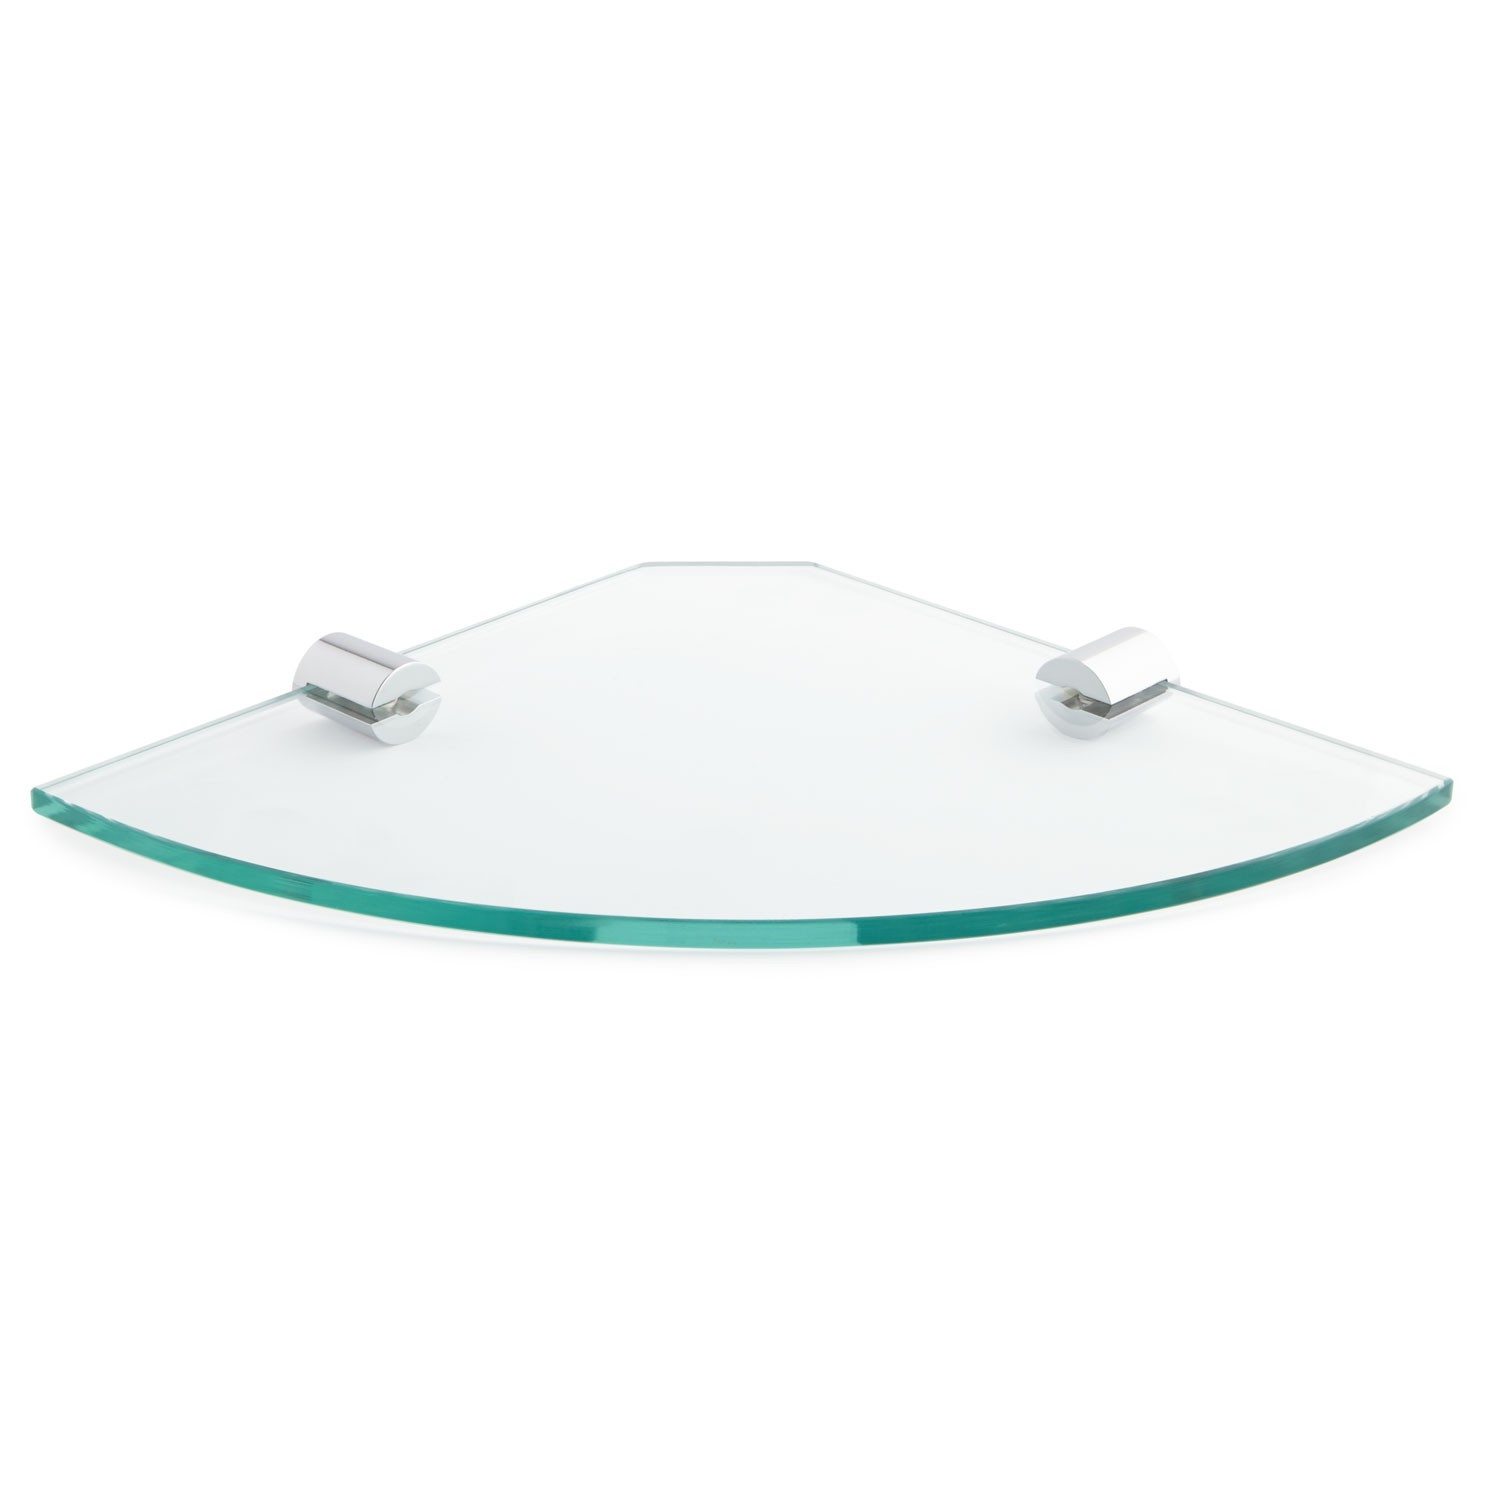 Bennie Tempered Glass Corner Shelf Bathroom Pertaining To Glass Corner Shelves (View 4 of 15)